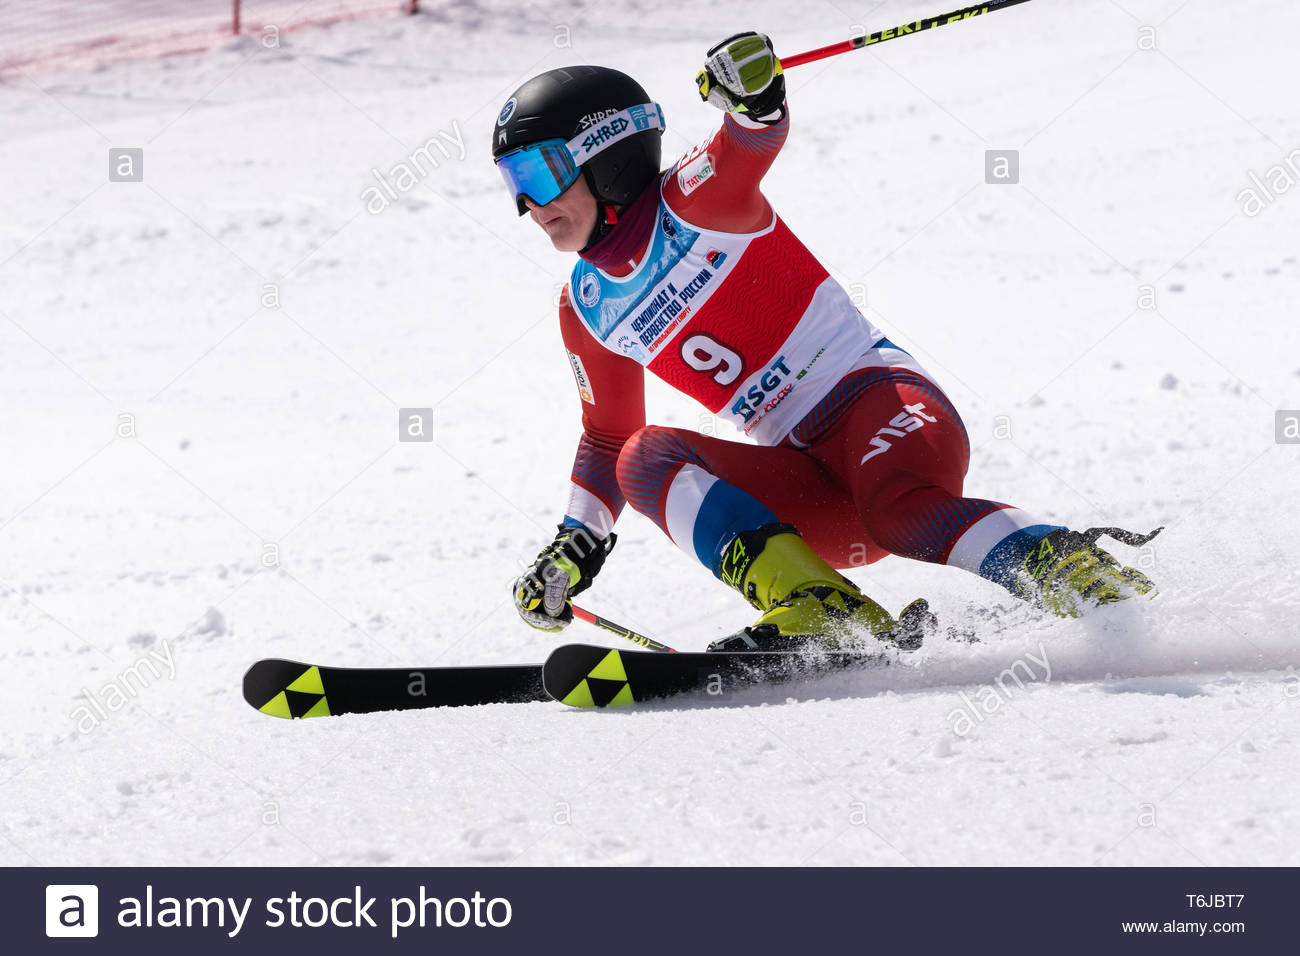 KAMCHATKA PENINSULA, RUSSIAN FEDERATION - APRIL 1, 2019: Russian Women's Alpine Skiing Championship, giant slalom. Mountain skier Polina Melnikova (Mo - Stock Image